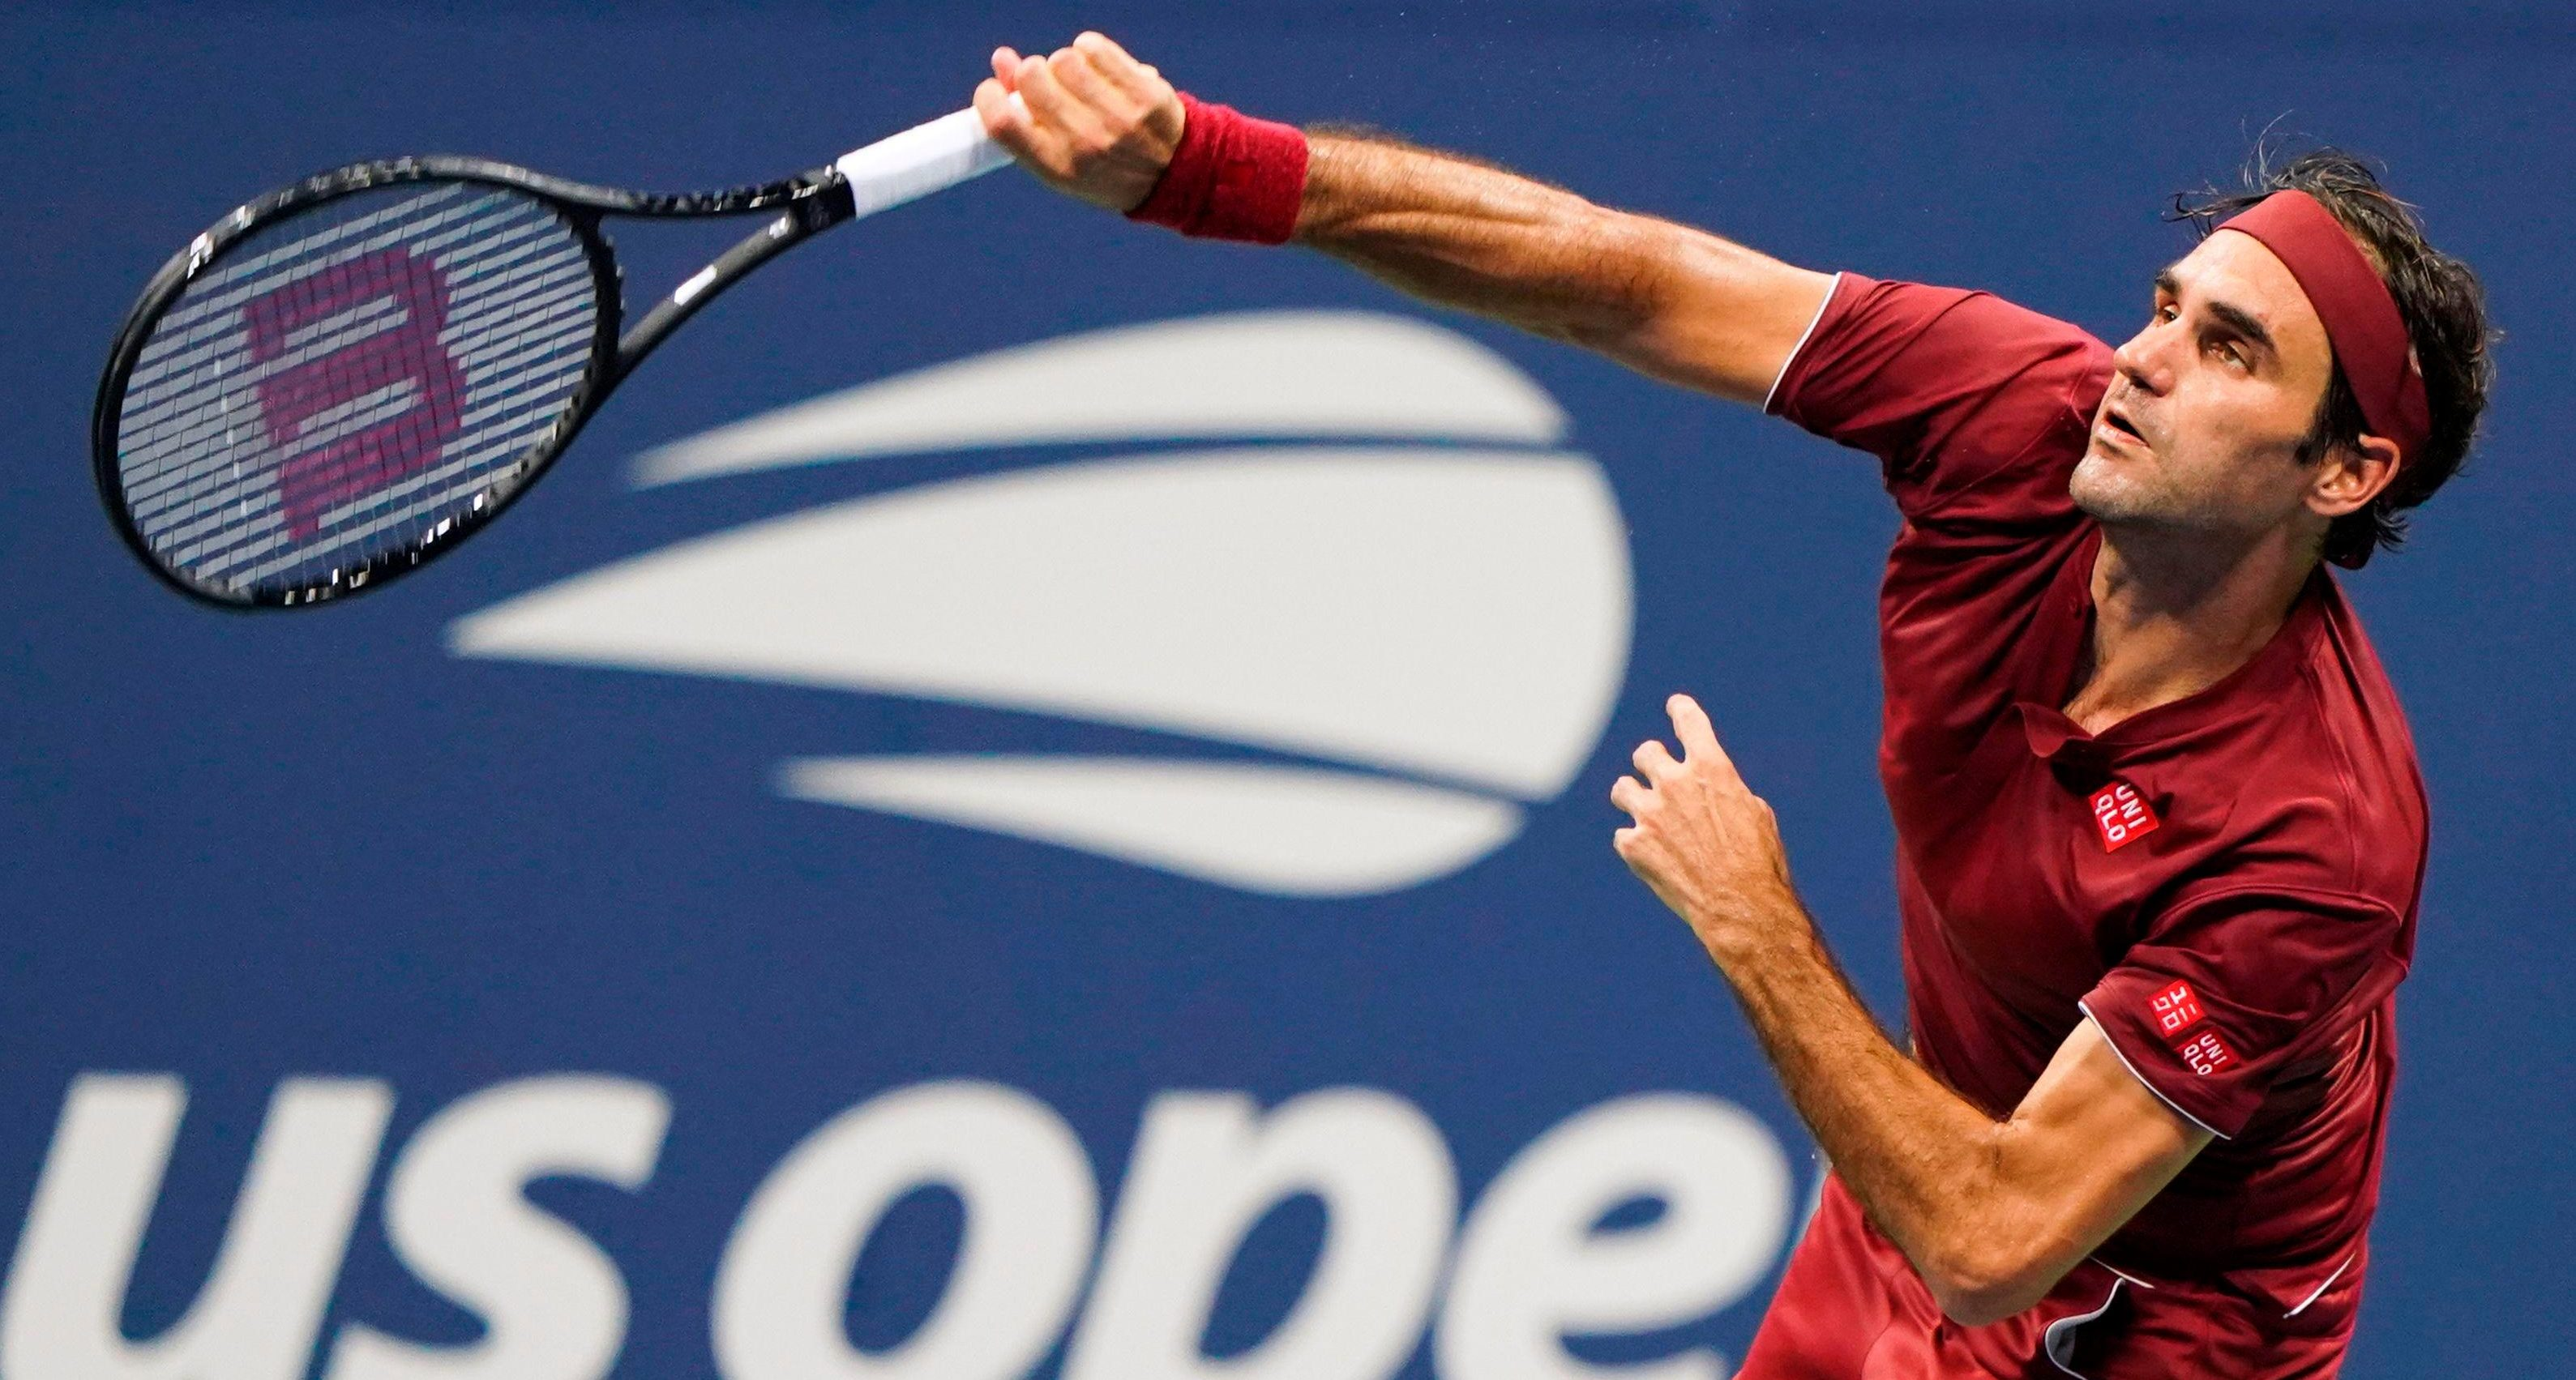 Roger Federer just could not stop Millman running away with the tie